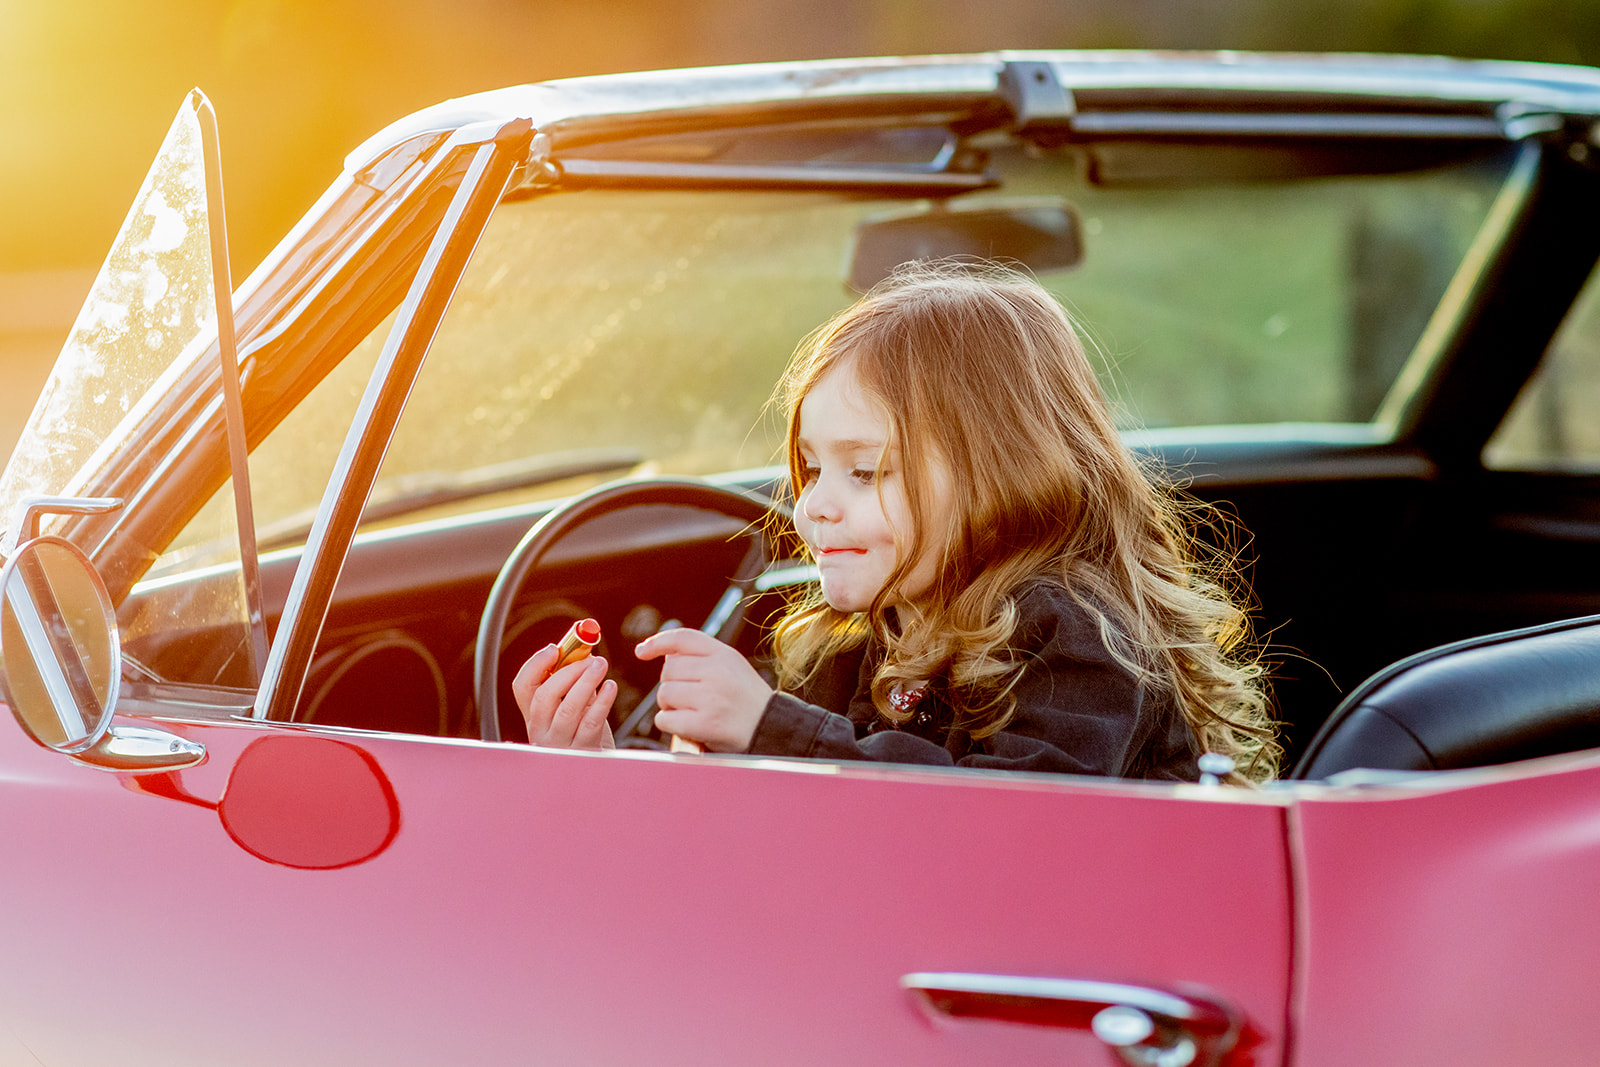 Bogue Family Photos with a Vintage Red Camaro - Image Property of www.j-dphoto.com